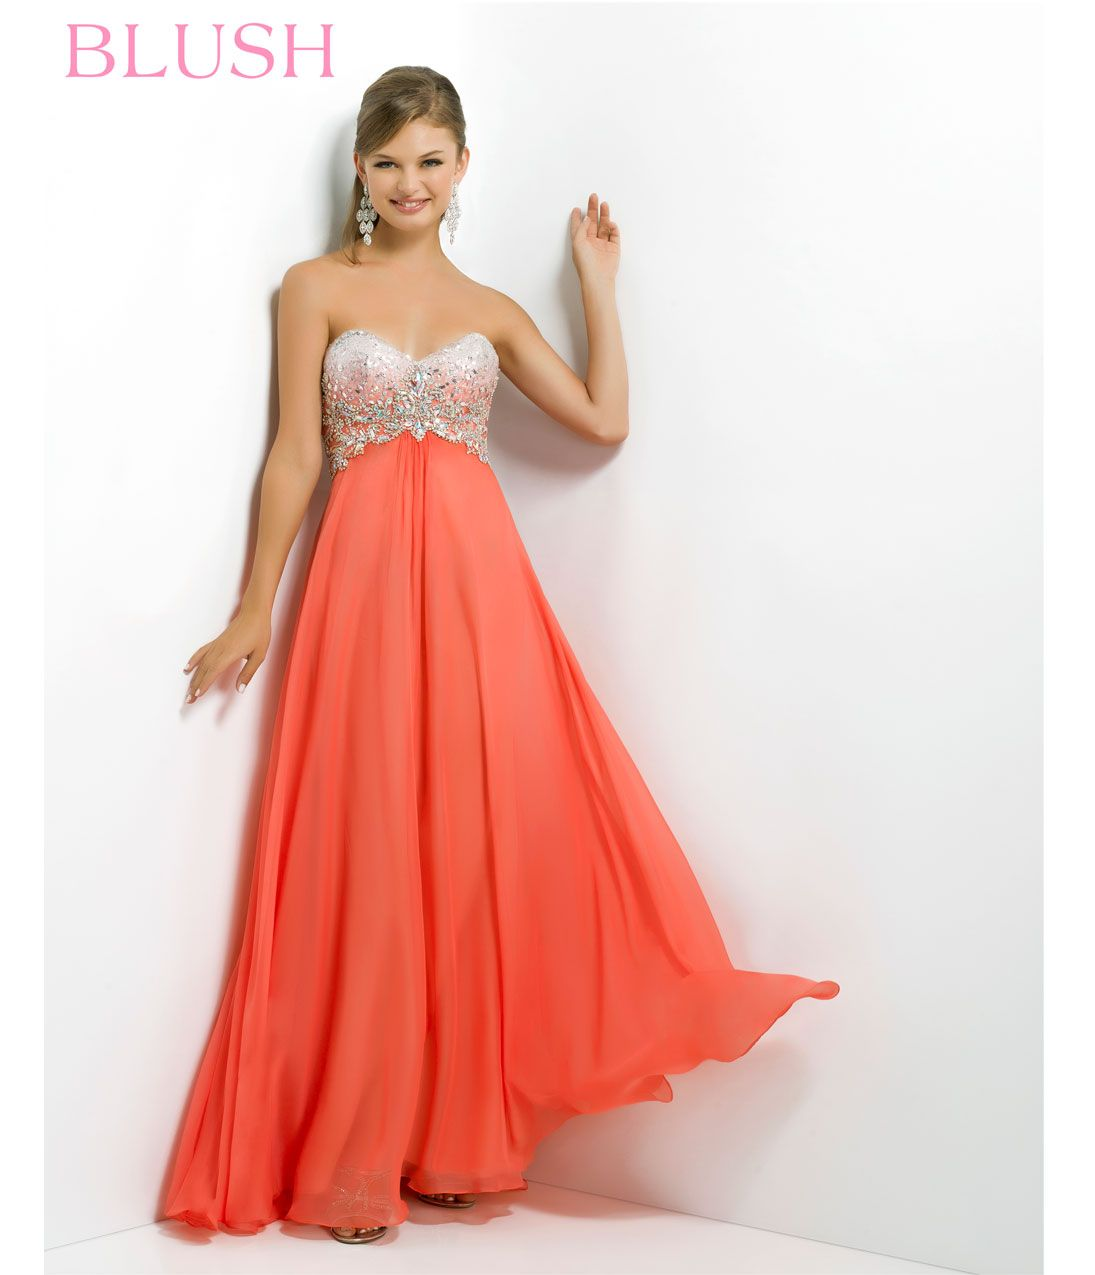 Blush 2014 Prom Dresses - Coral Pink Sequin & Chiffon Strapless ...